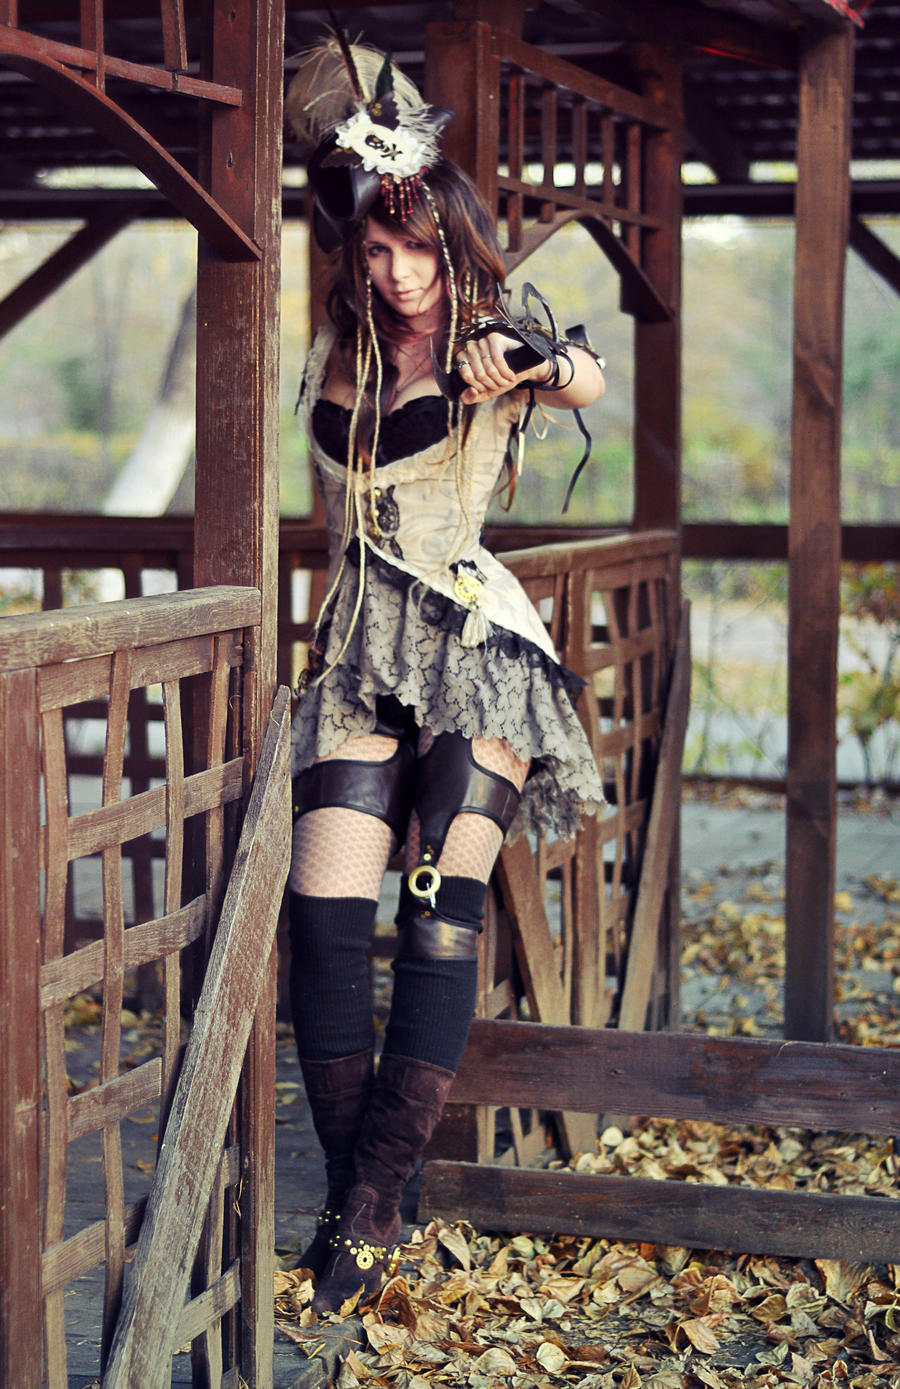 Steampunk Pirate Costume, Steampunk Fashion, Steampunk ...